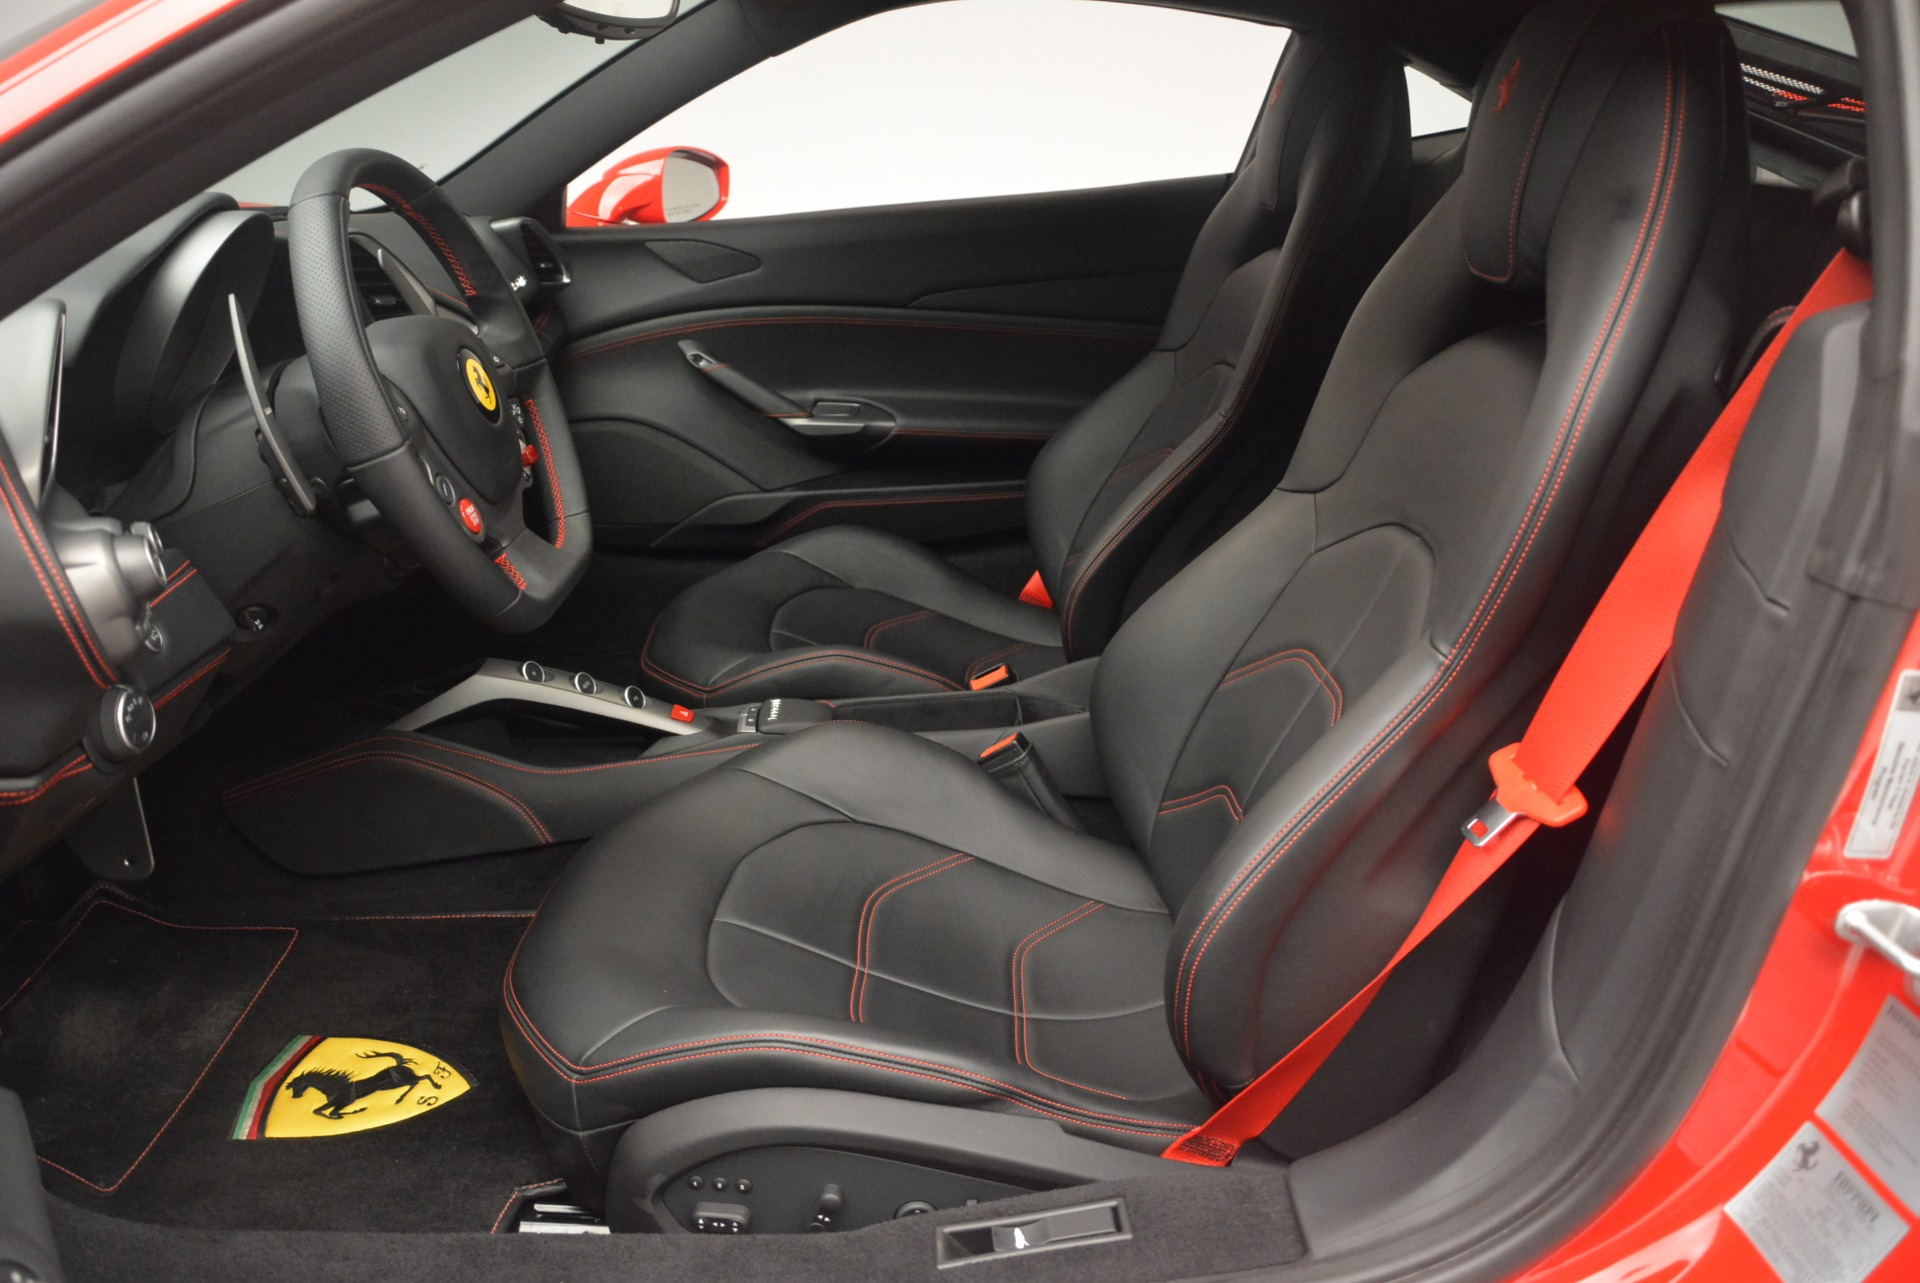 Used 2017 Ferrari 488 GTB  For Sale In Greenwich, CT. Alfa Romeo of Greenwich, 4488 2365_p14